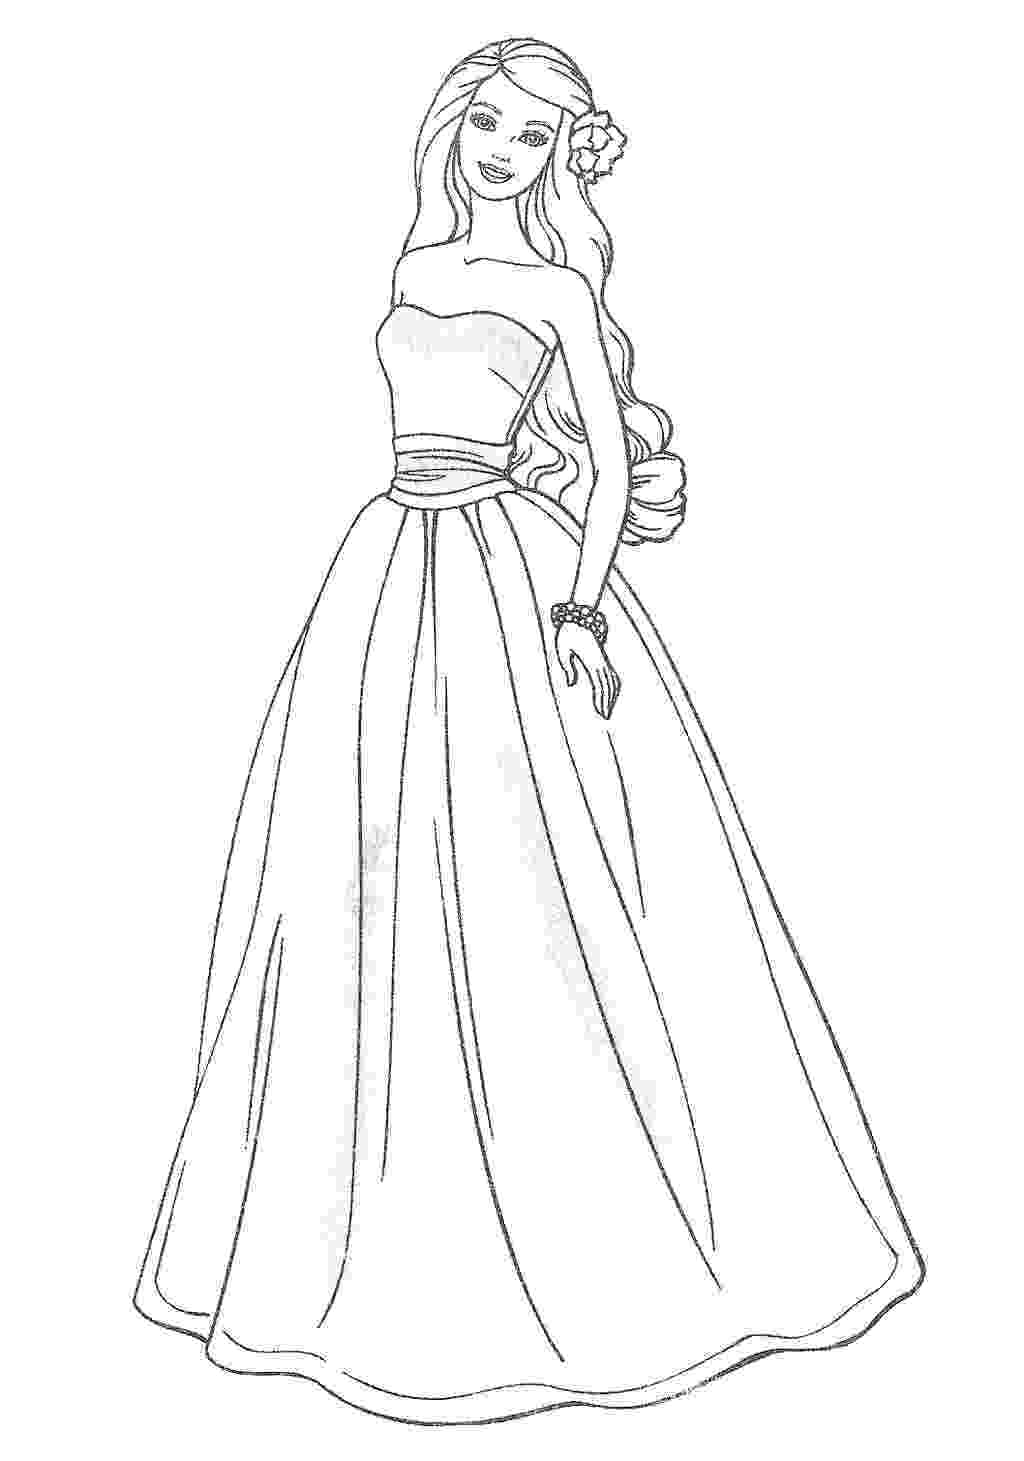 coloring pages of dresses dress coloring pages to download and print for free of pages dresses coloring